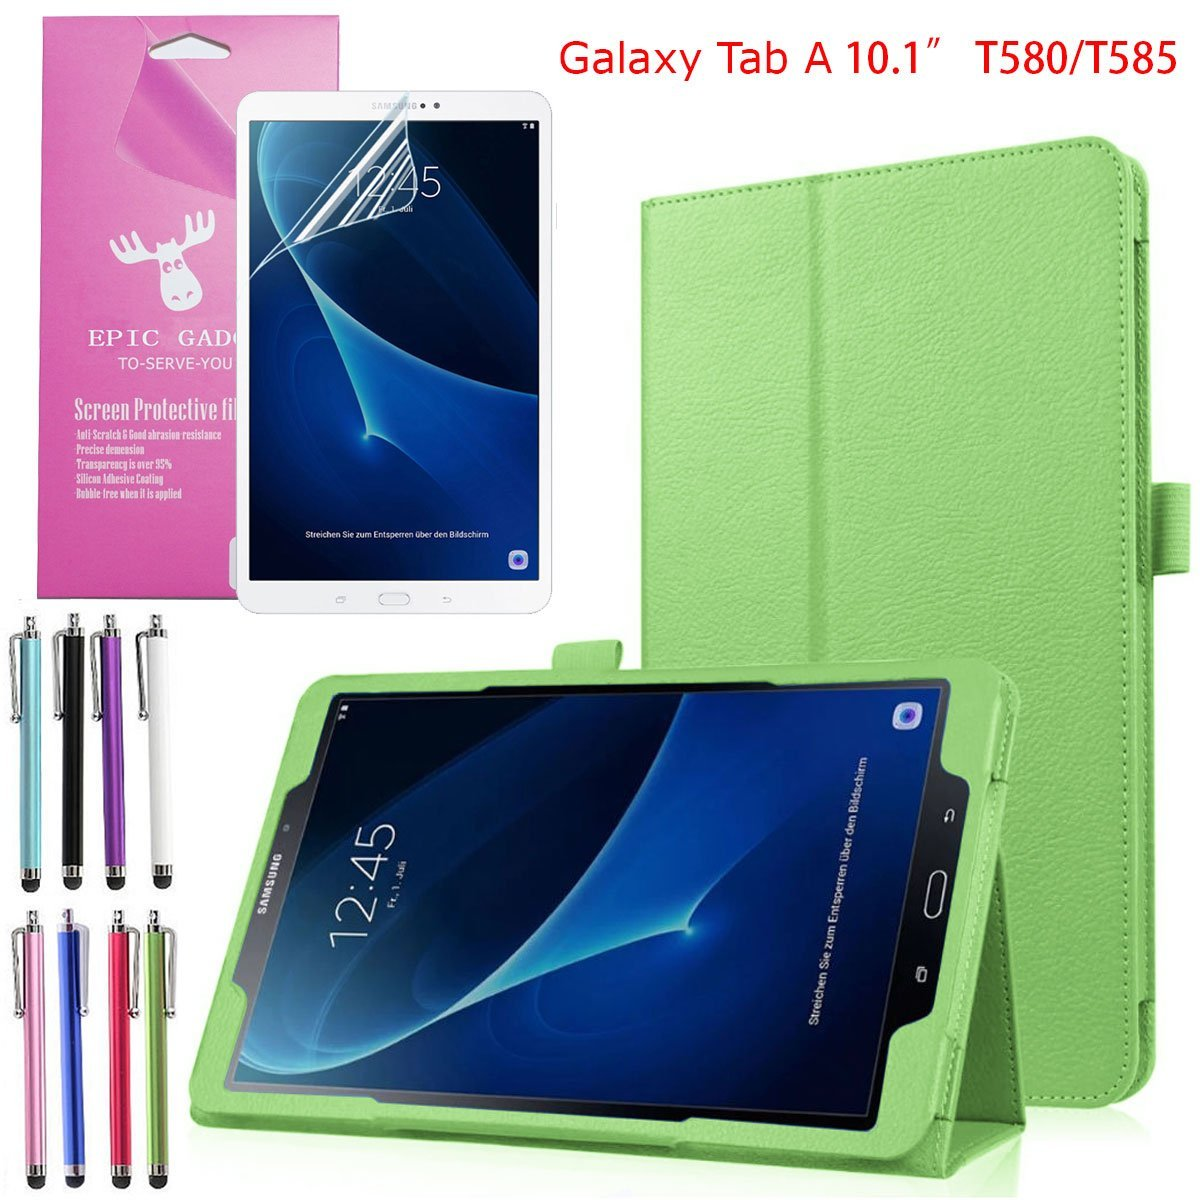 Samsung Galaxy Tab A 10.1 Tablet Folio Case (SM-T580/T585), EpicGadget(TM) Lightweight Slim Smart Cover Leather Case Stand Cover with Auto Sleep/Wake for Tab A 10.1 Tablet + Screen Protector (Green)